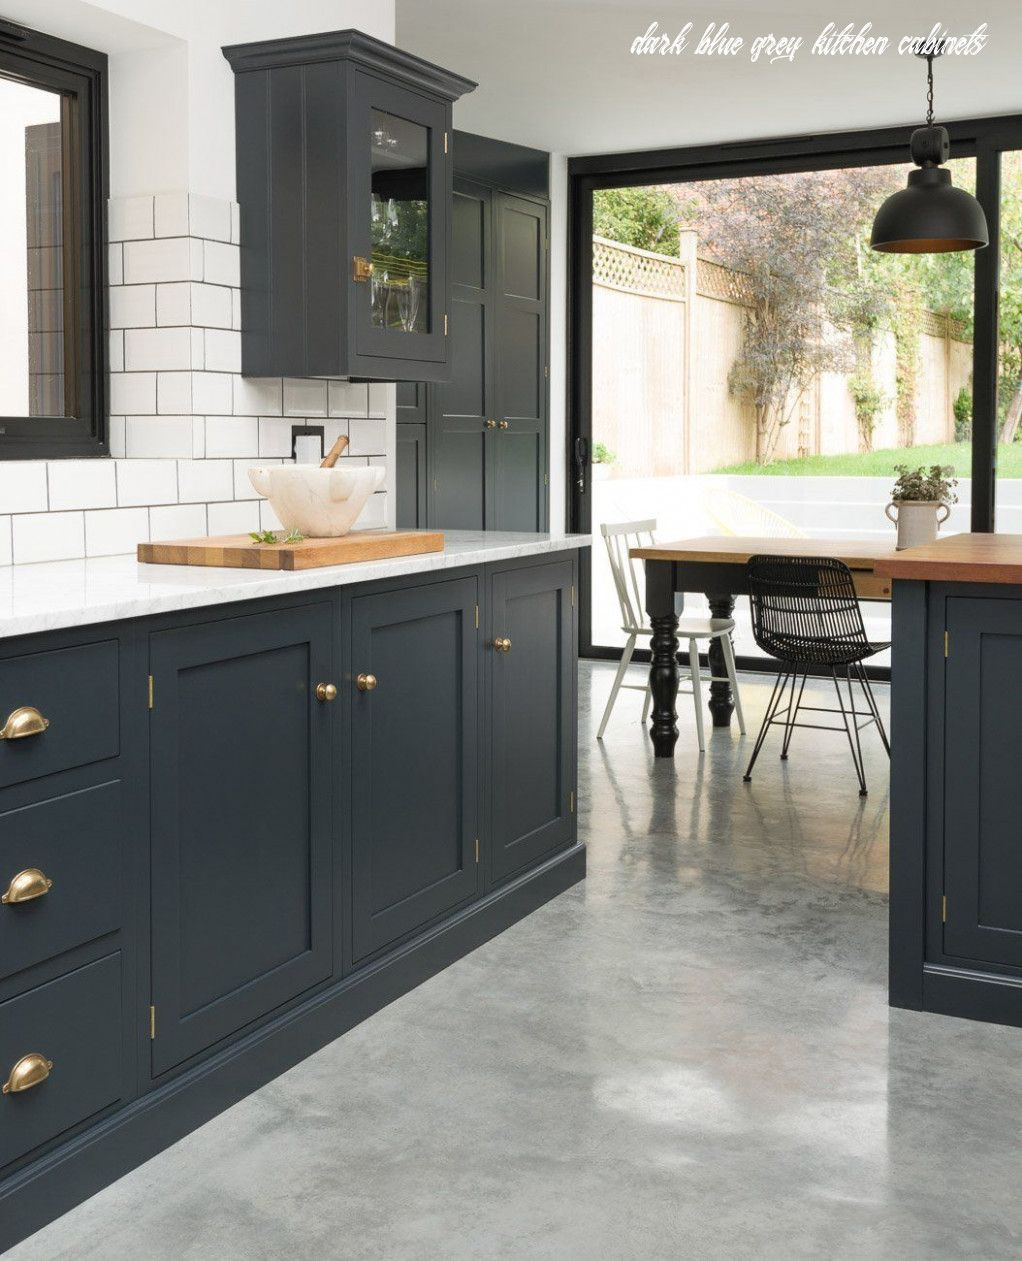 Why You Should Not Go To Dark Blue Grey Kitchen Cabinets In 2020 Traditional Kitchen Design Devol Kitchens New Kitchen Cabinets